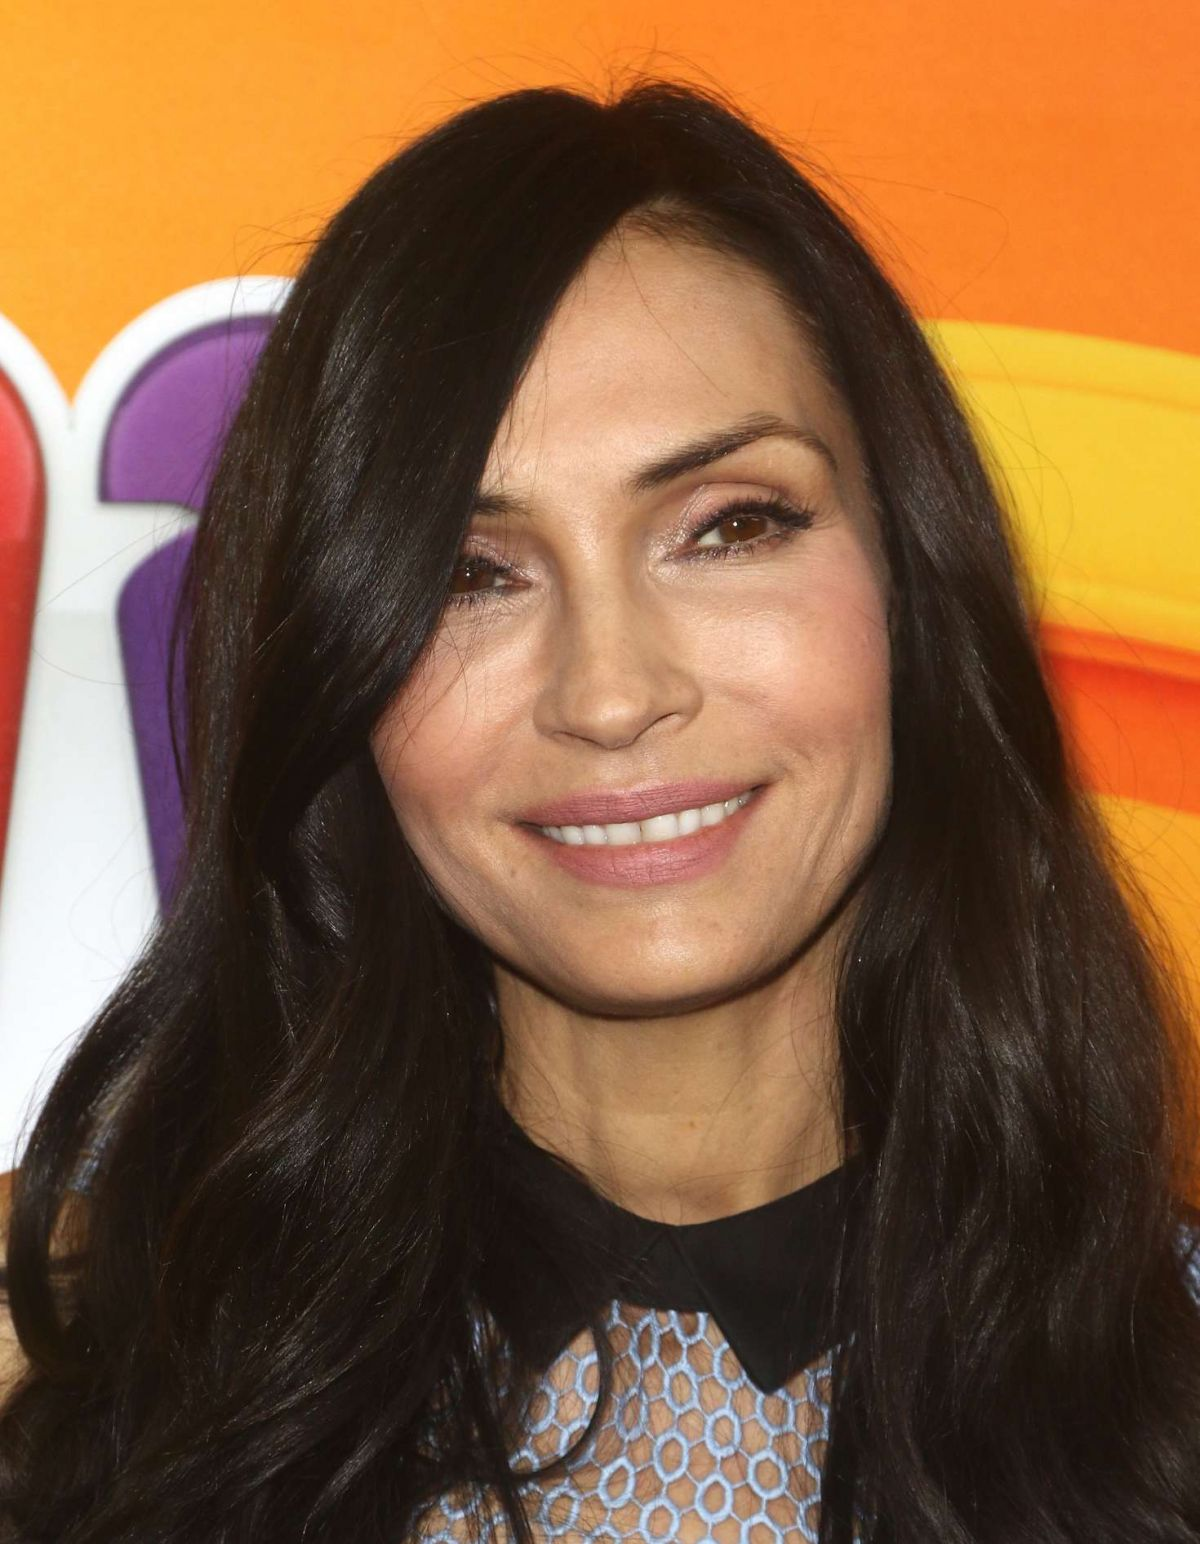 FAMKE JANSSEN at NBC/Universal 2017 Winter TCA Press Tour ...